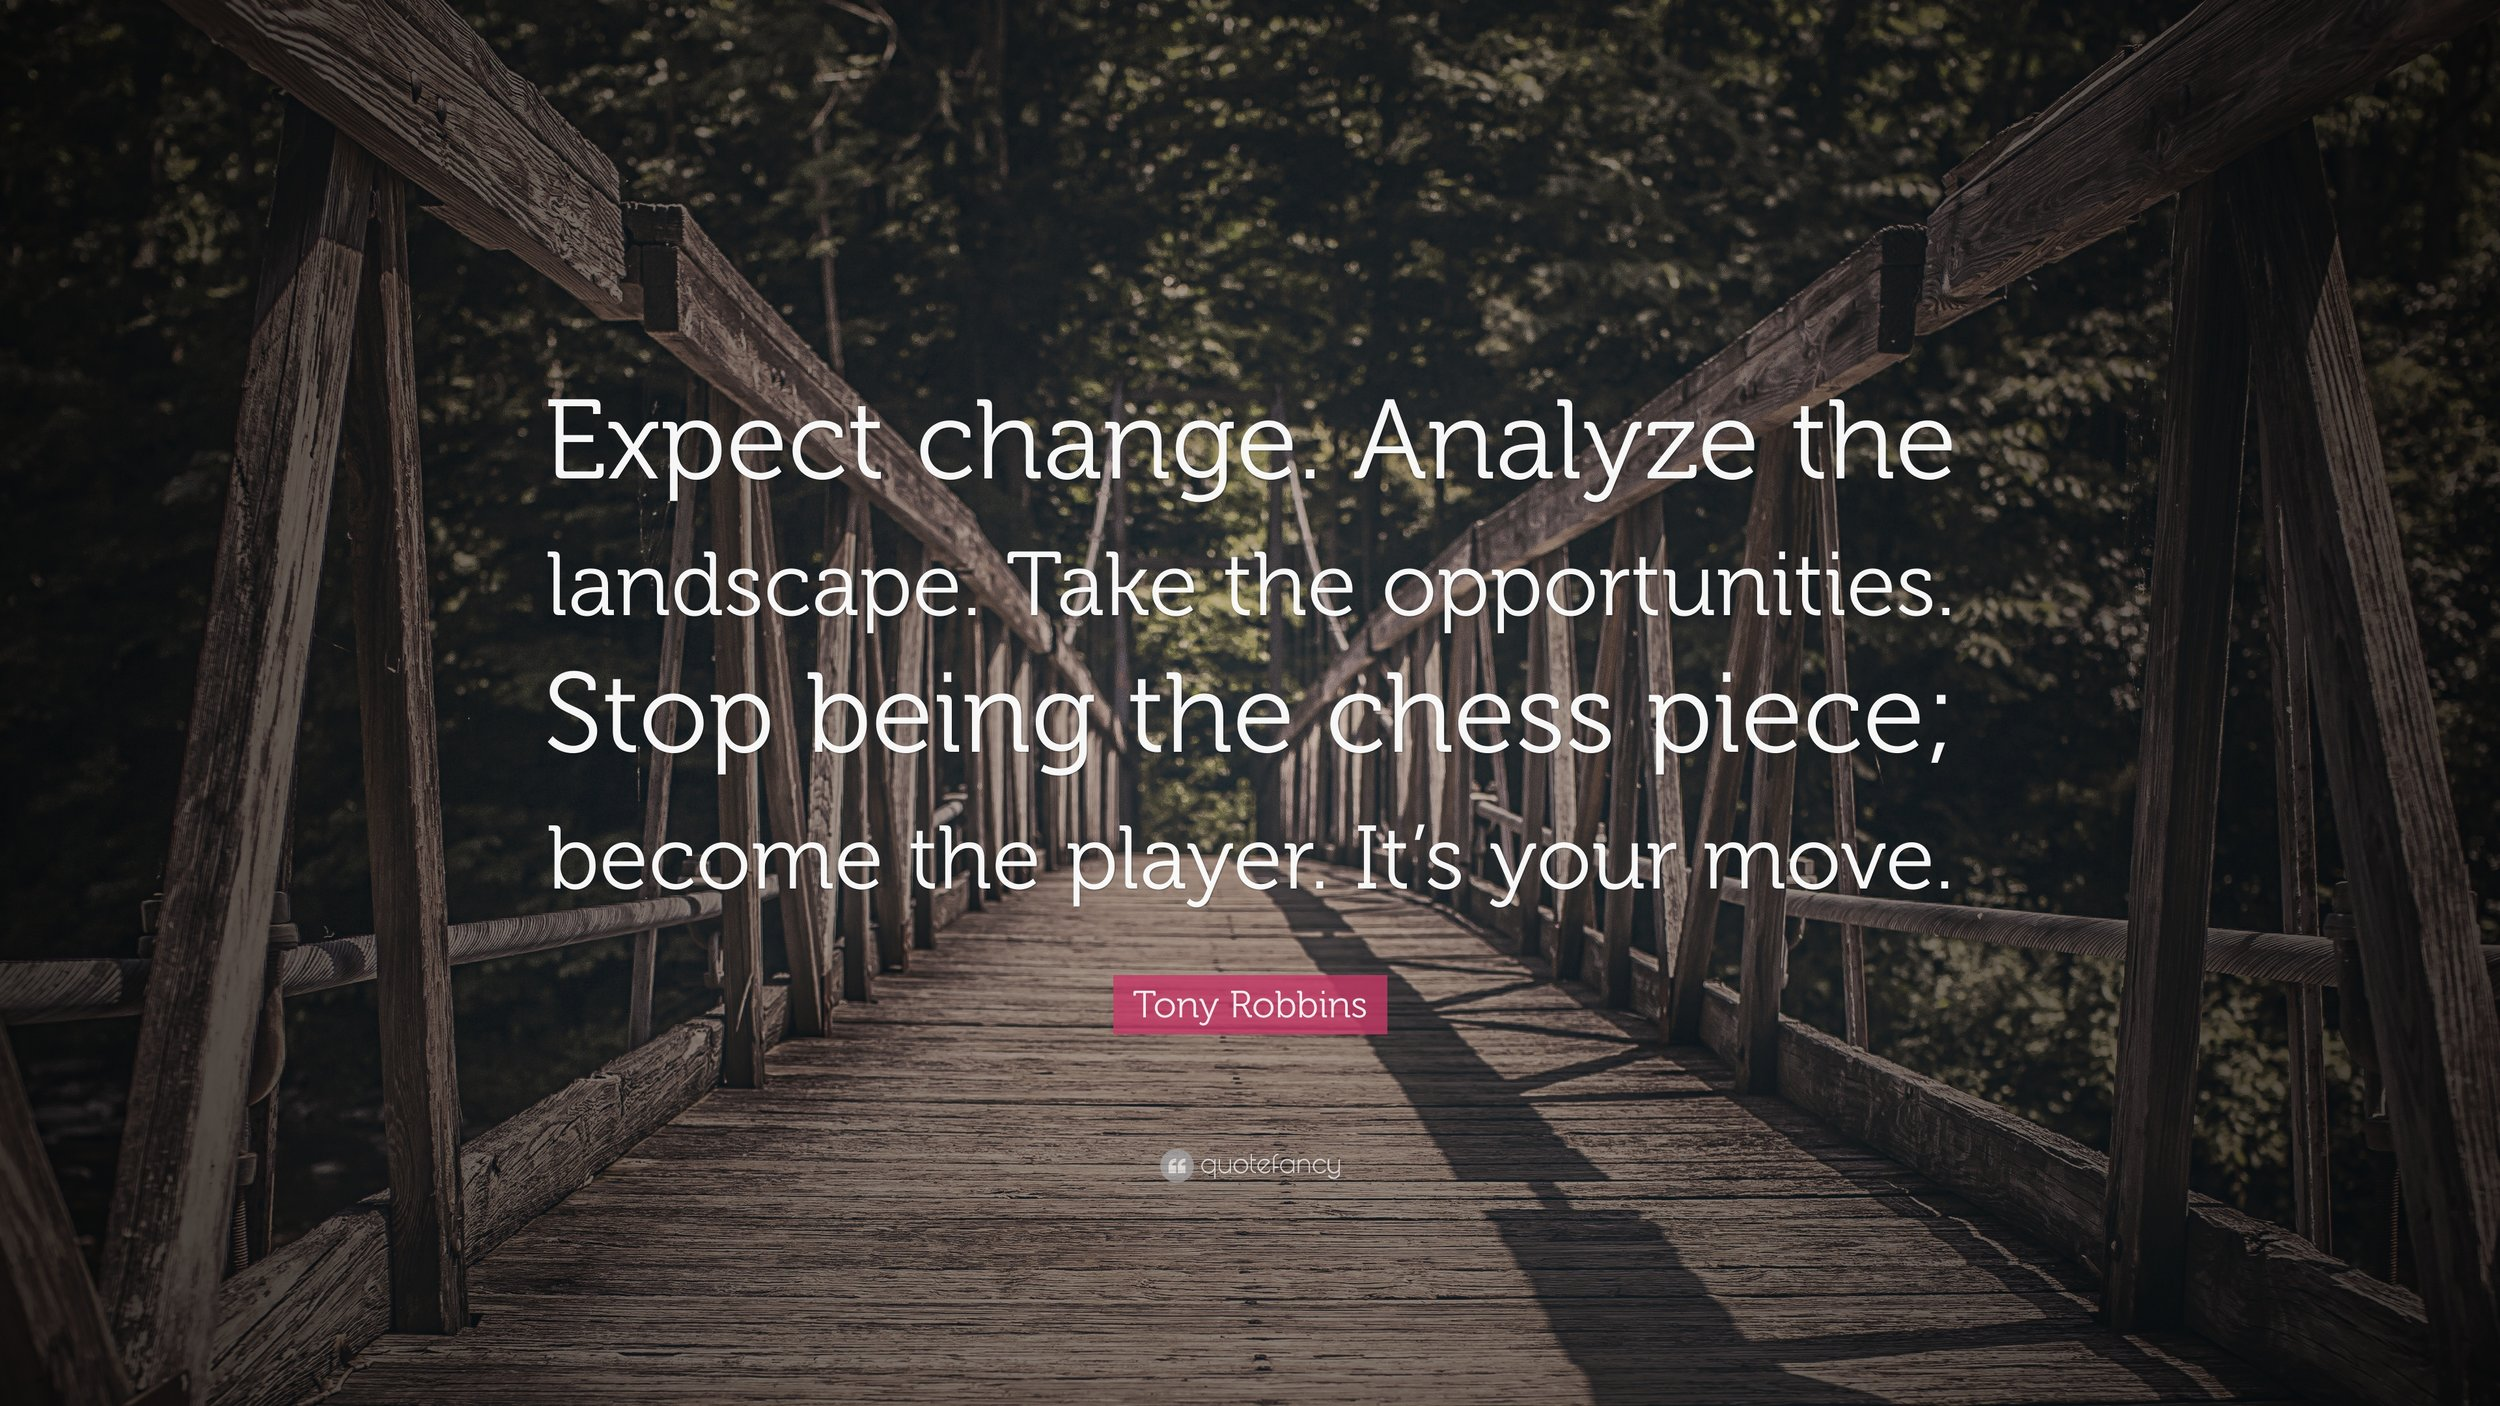 238200-Tony-Robbins-Quote-Expect-change-Analyze-the-landscape-Take-the.jpg